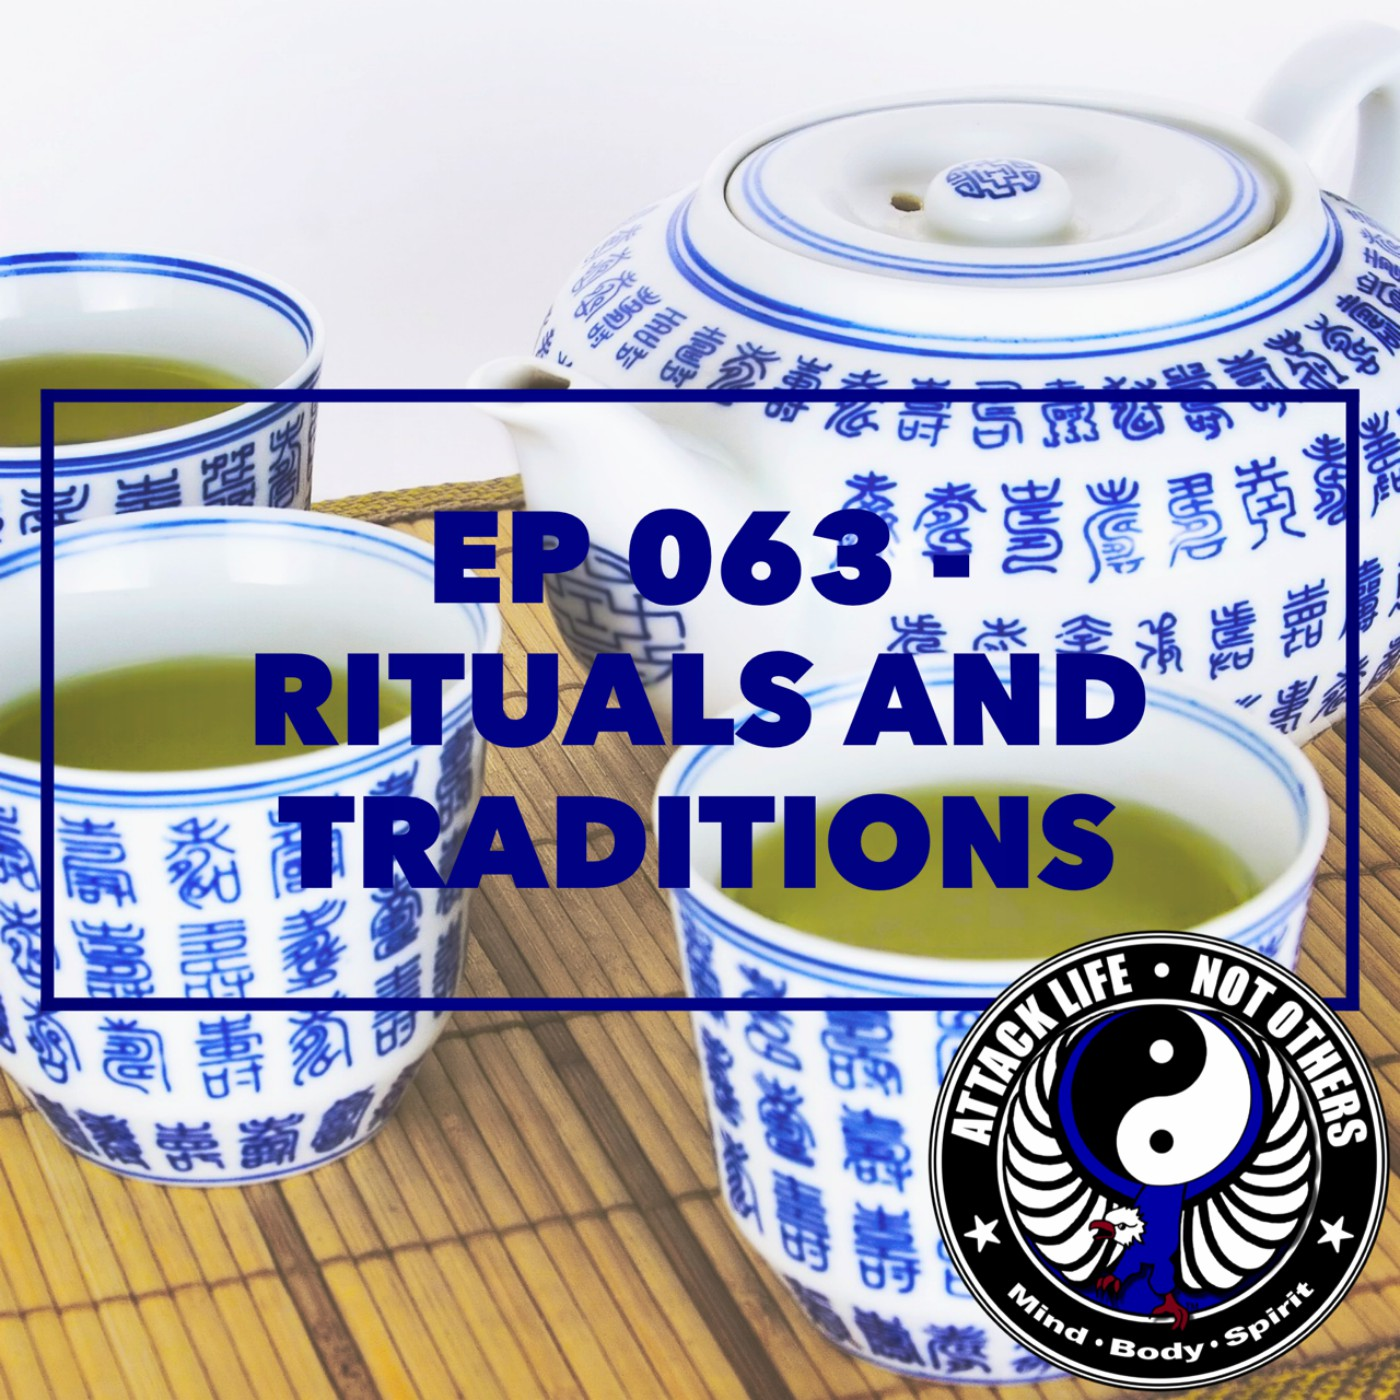 Ep 063 - Rituals and Traditions